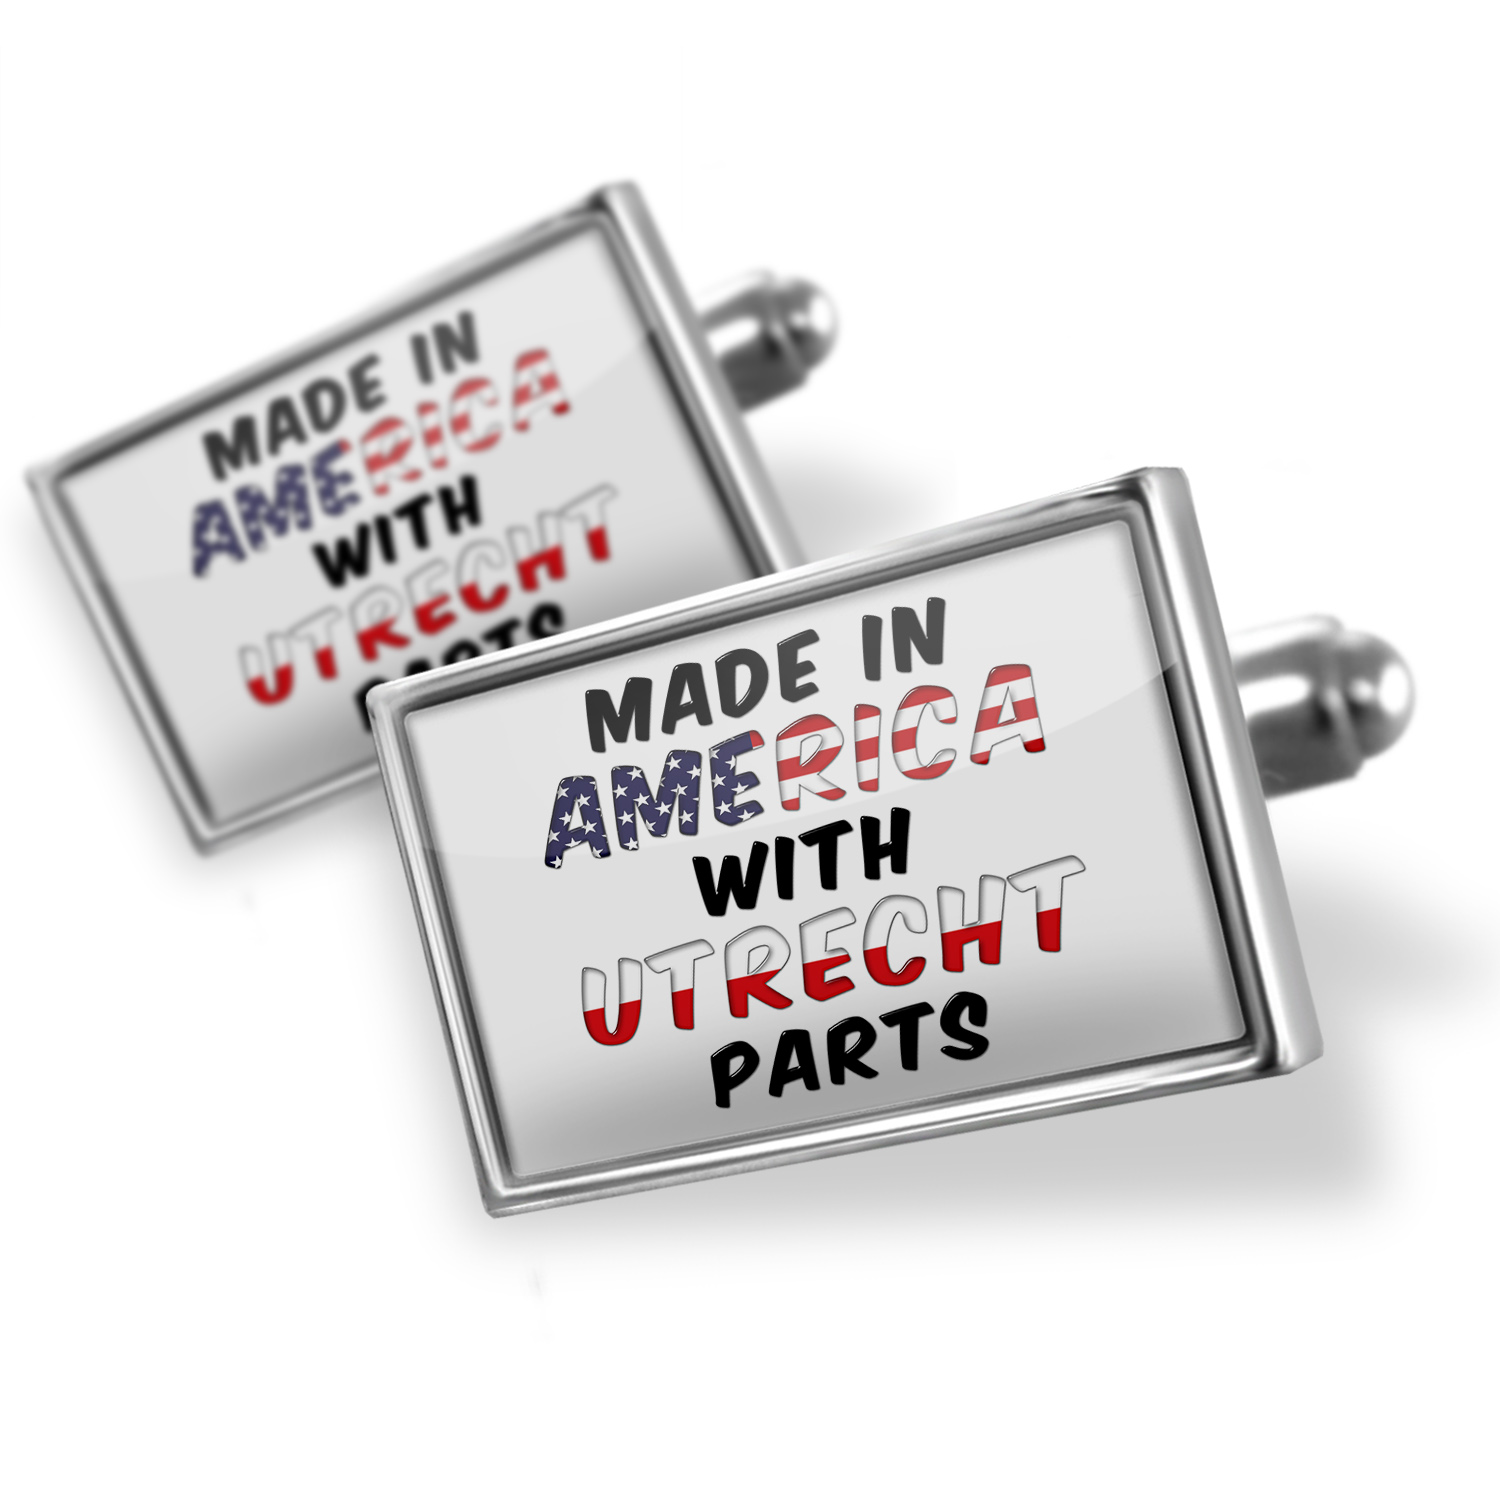 Cufflinks Made in America with Parts from Utrecht - NEONBLOND